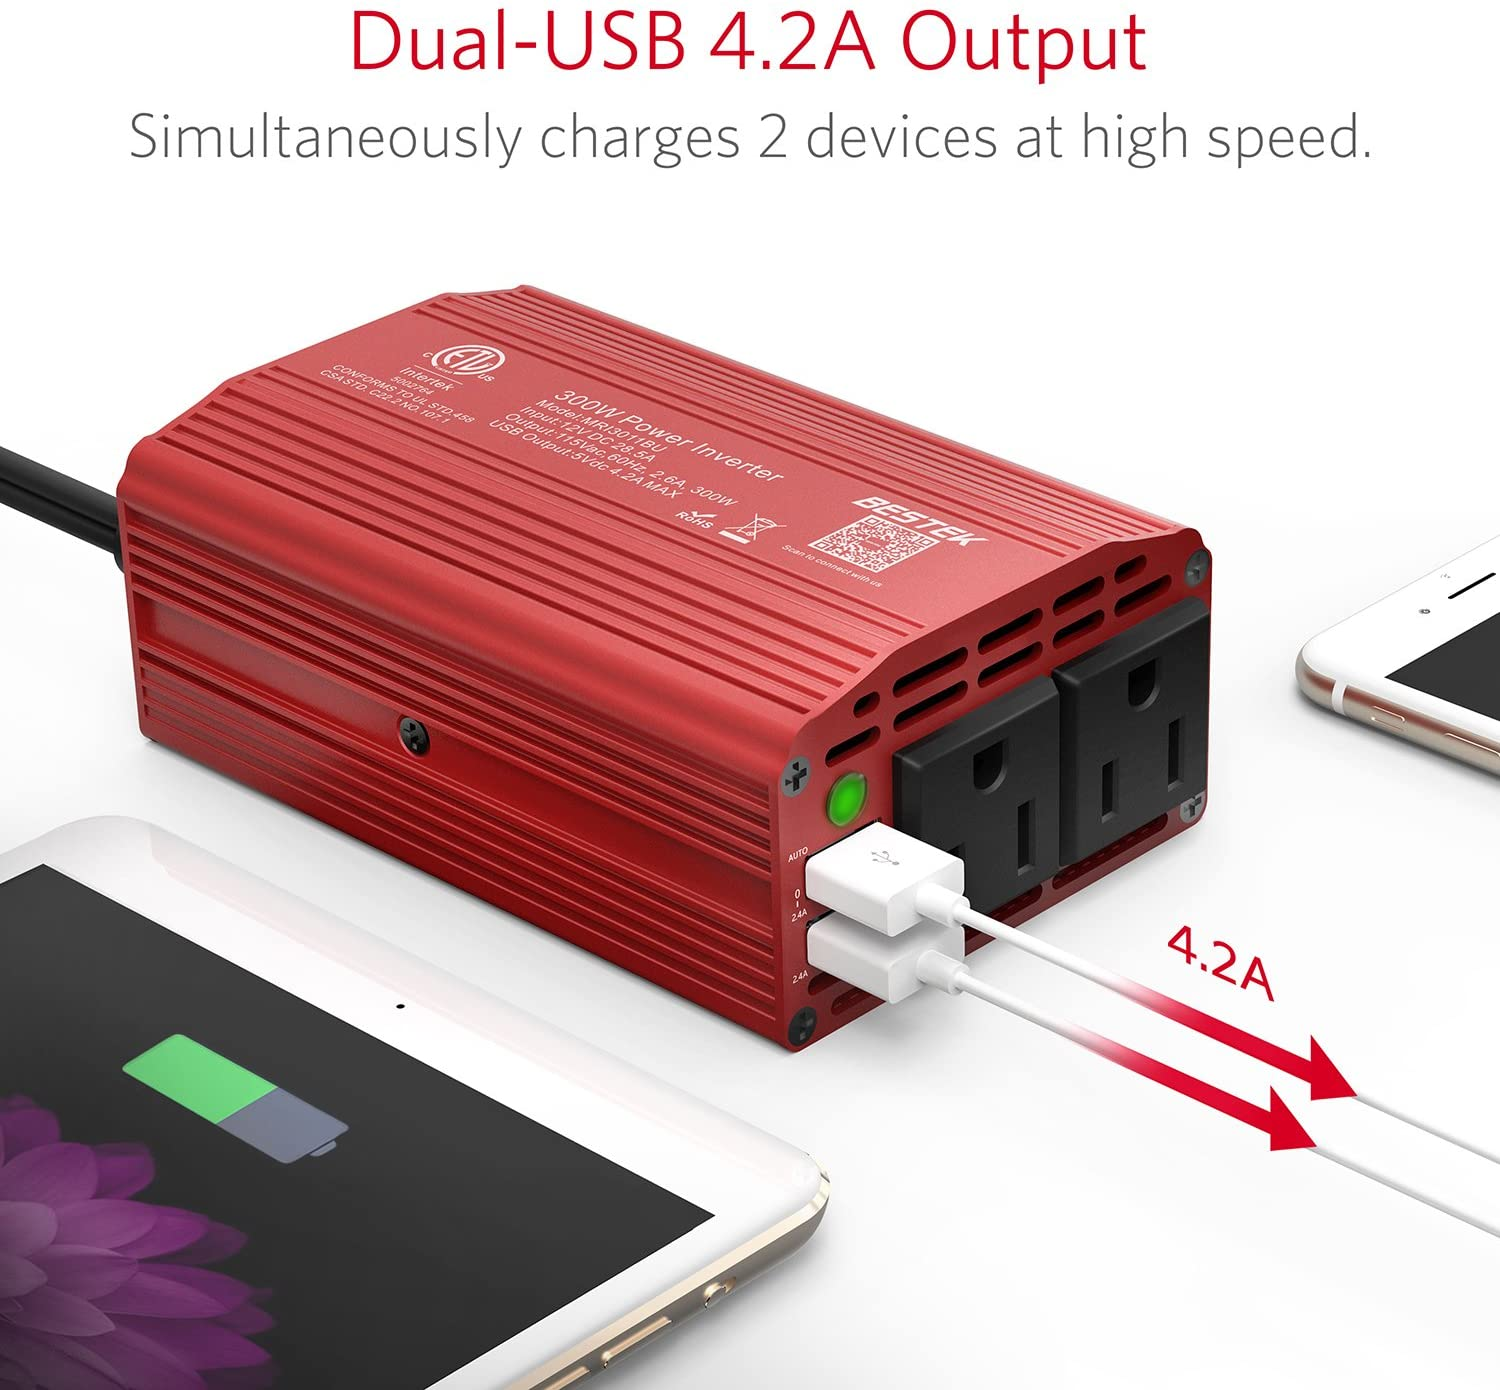 12v Power Inverter Car 12 Volt 240v Mains Charger Laptop 70W Van USB travel 230v